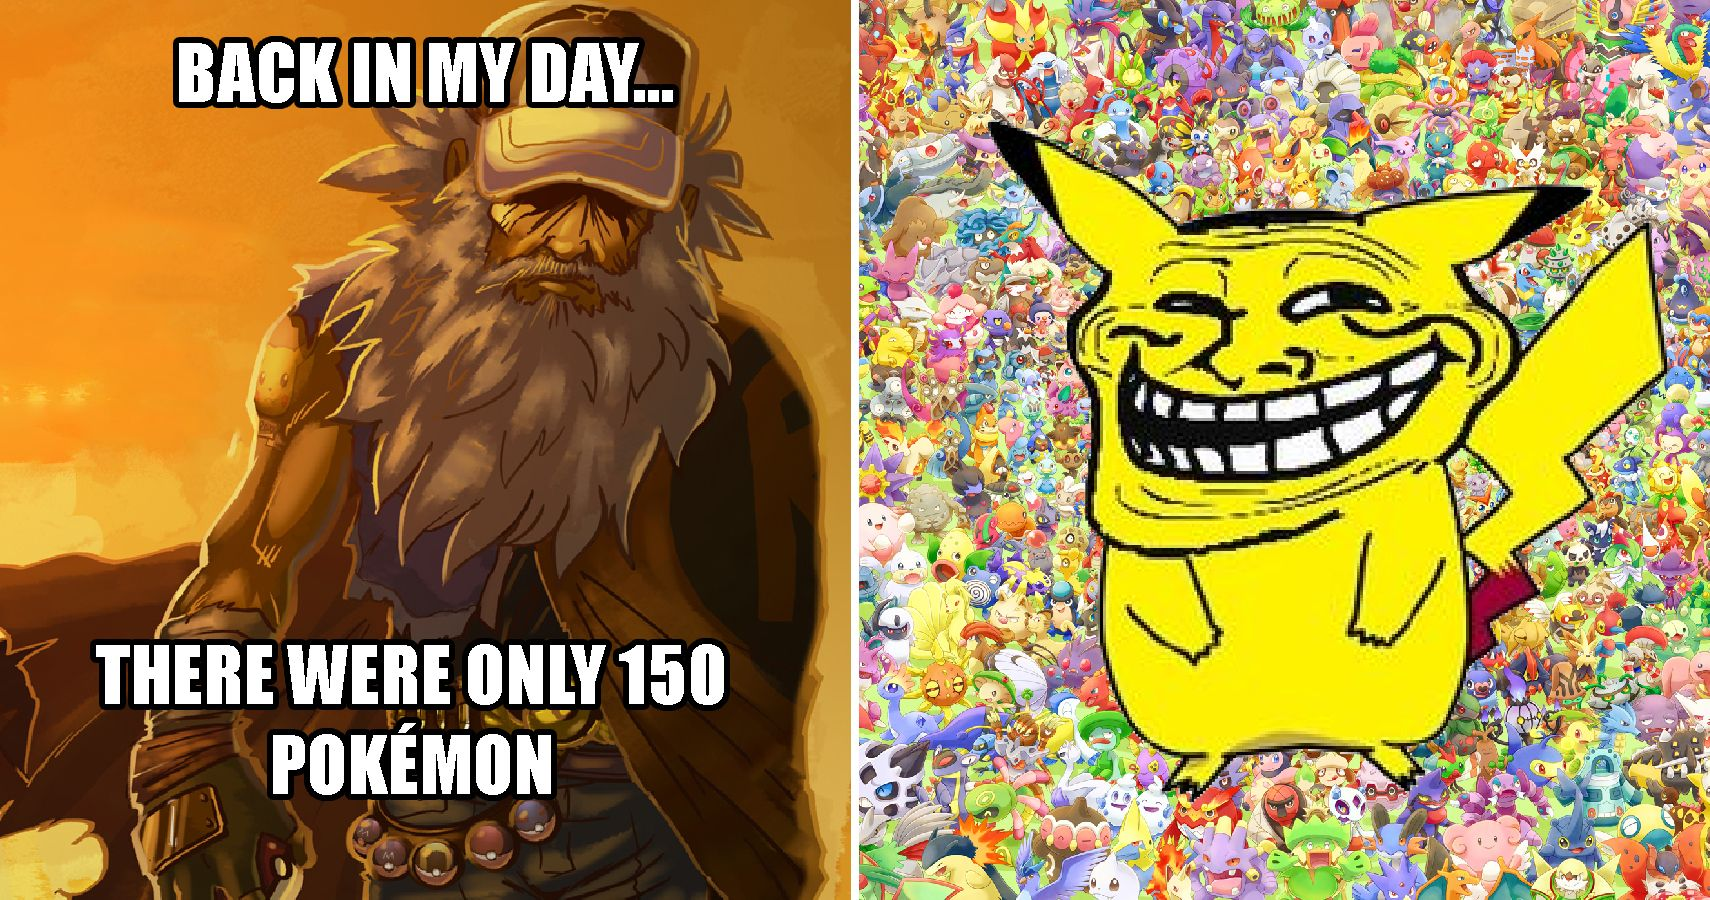 pokemon red and blue troll meme hilarious pokémon red and blue memes that will make any player say